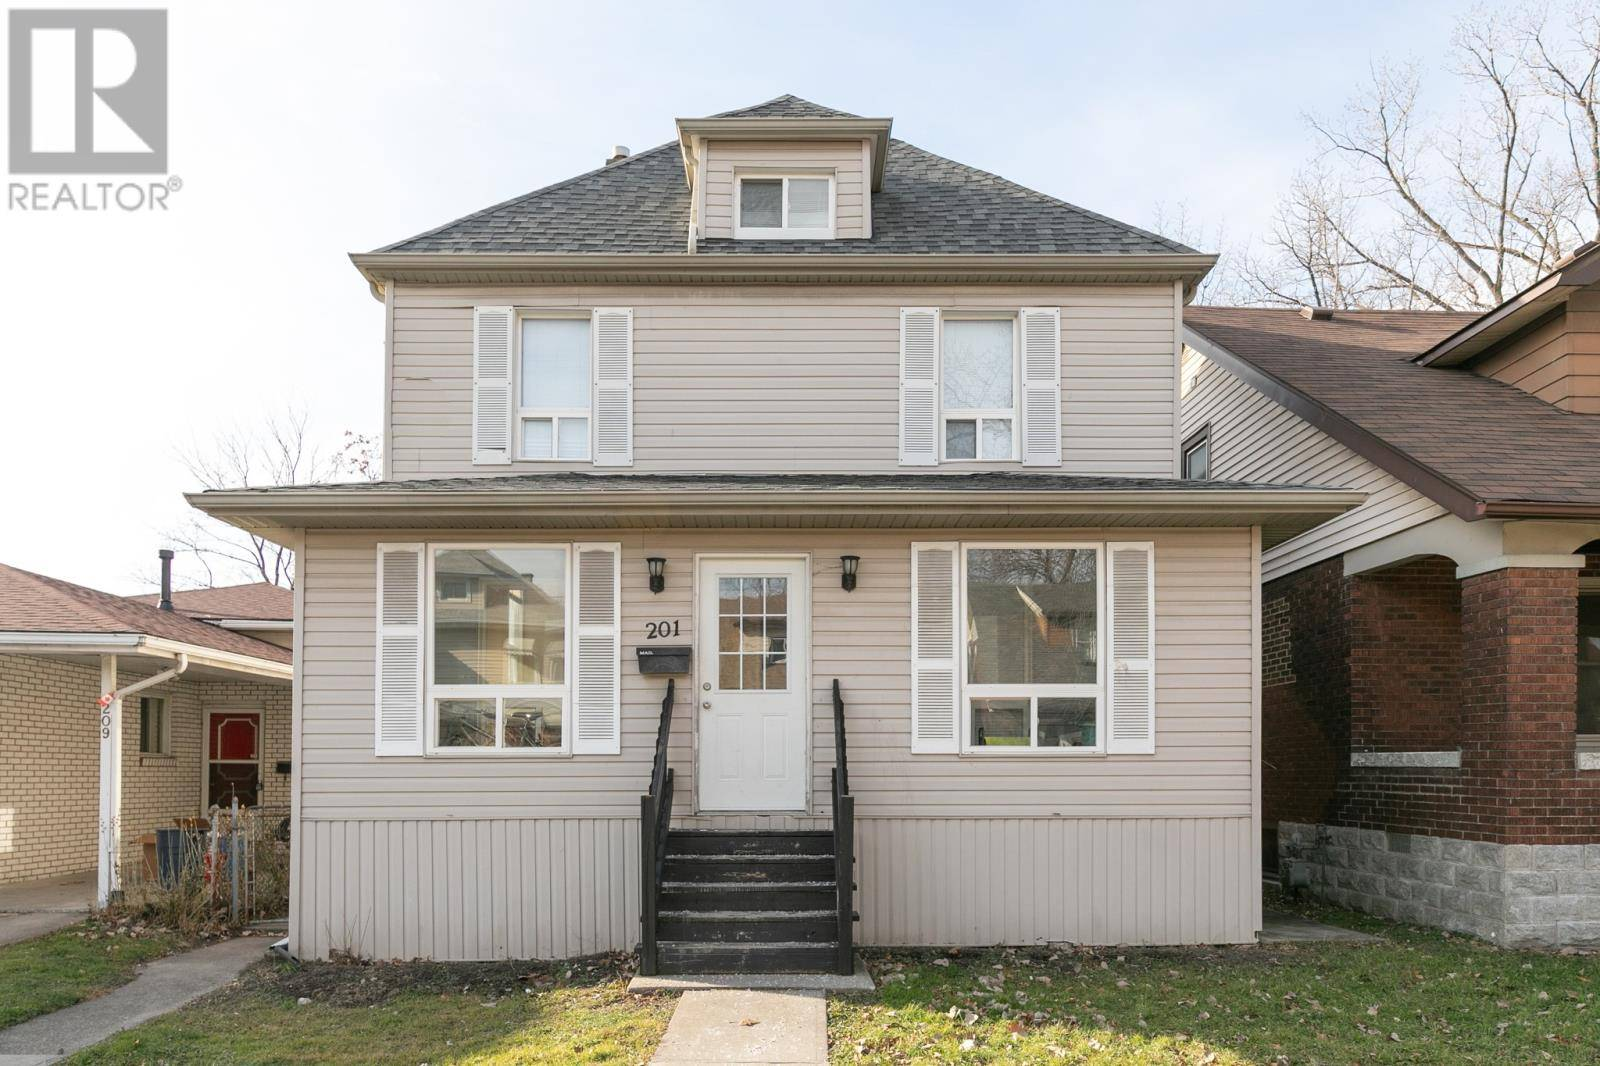 House for sale at 201 Bridge Ave Windsor Ontario - MLS: 20000330